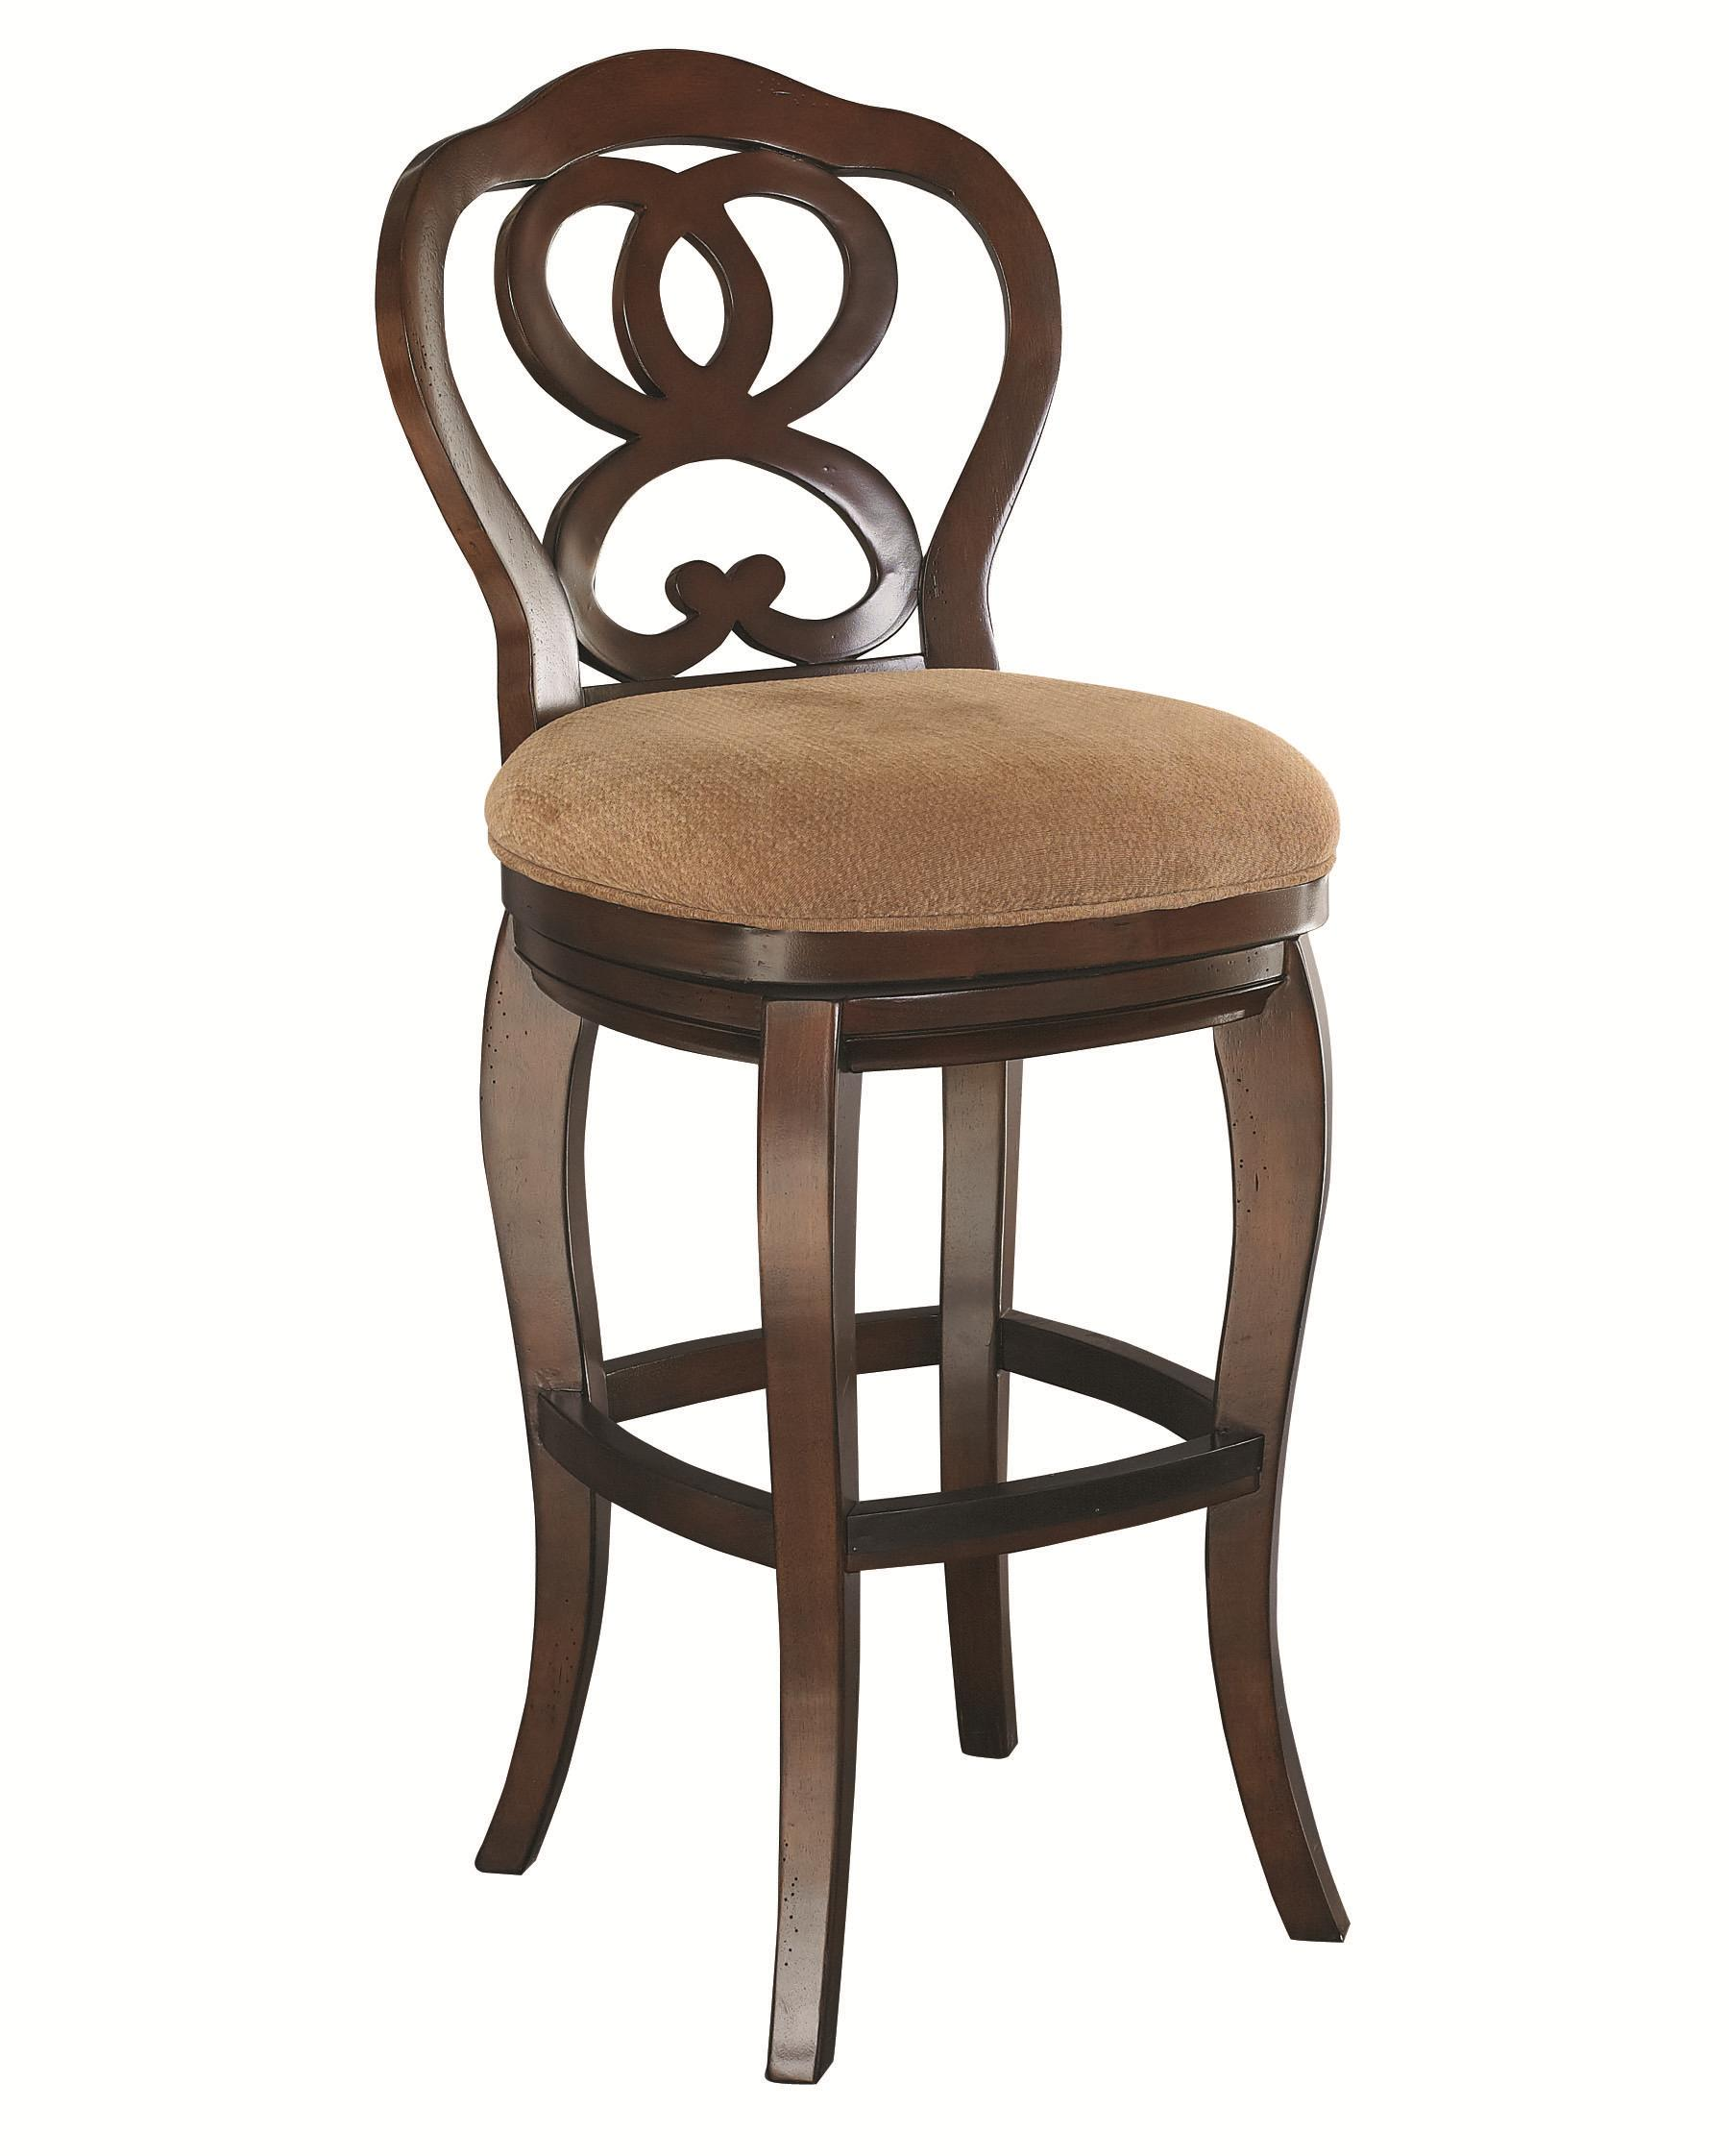 Hammary Hidden Treasures Counter Height Barstool - Item Number: T73184-00